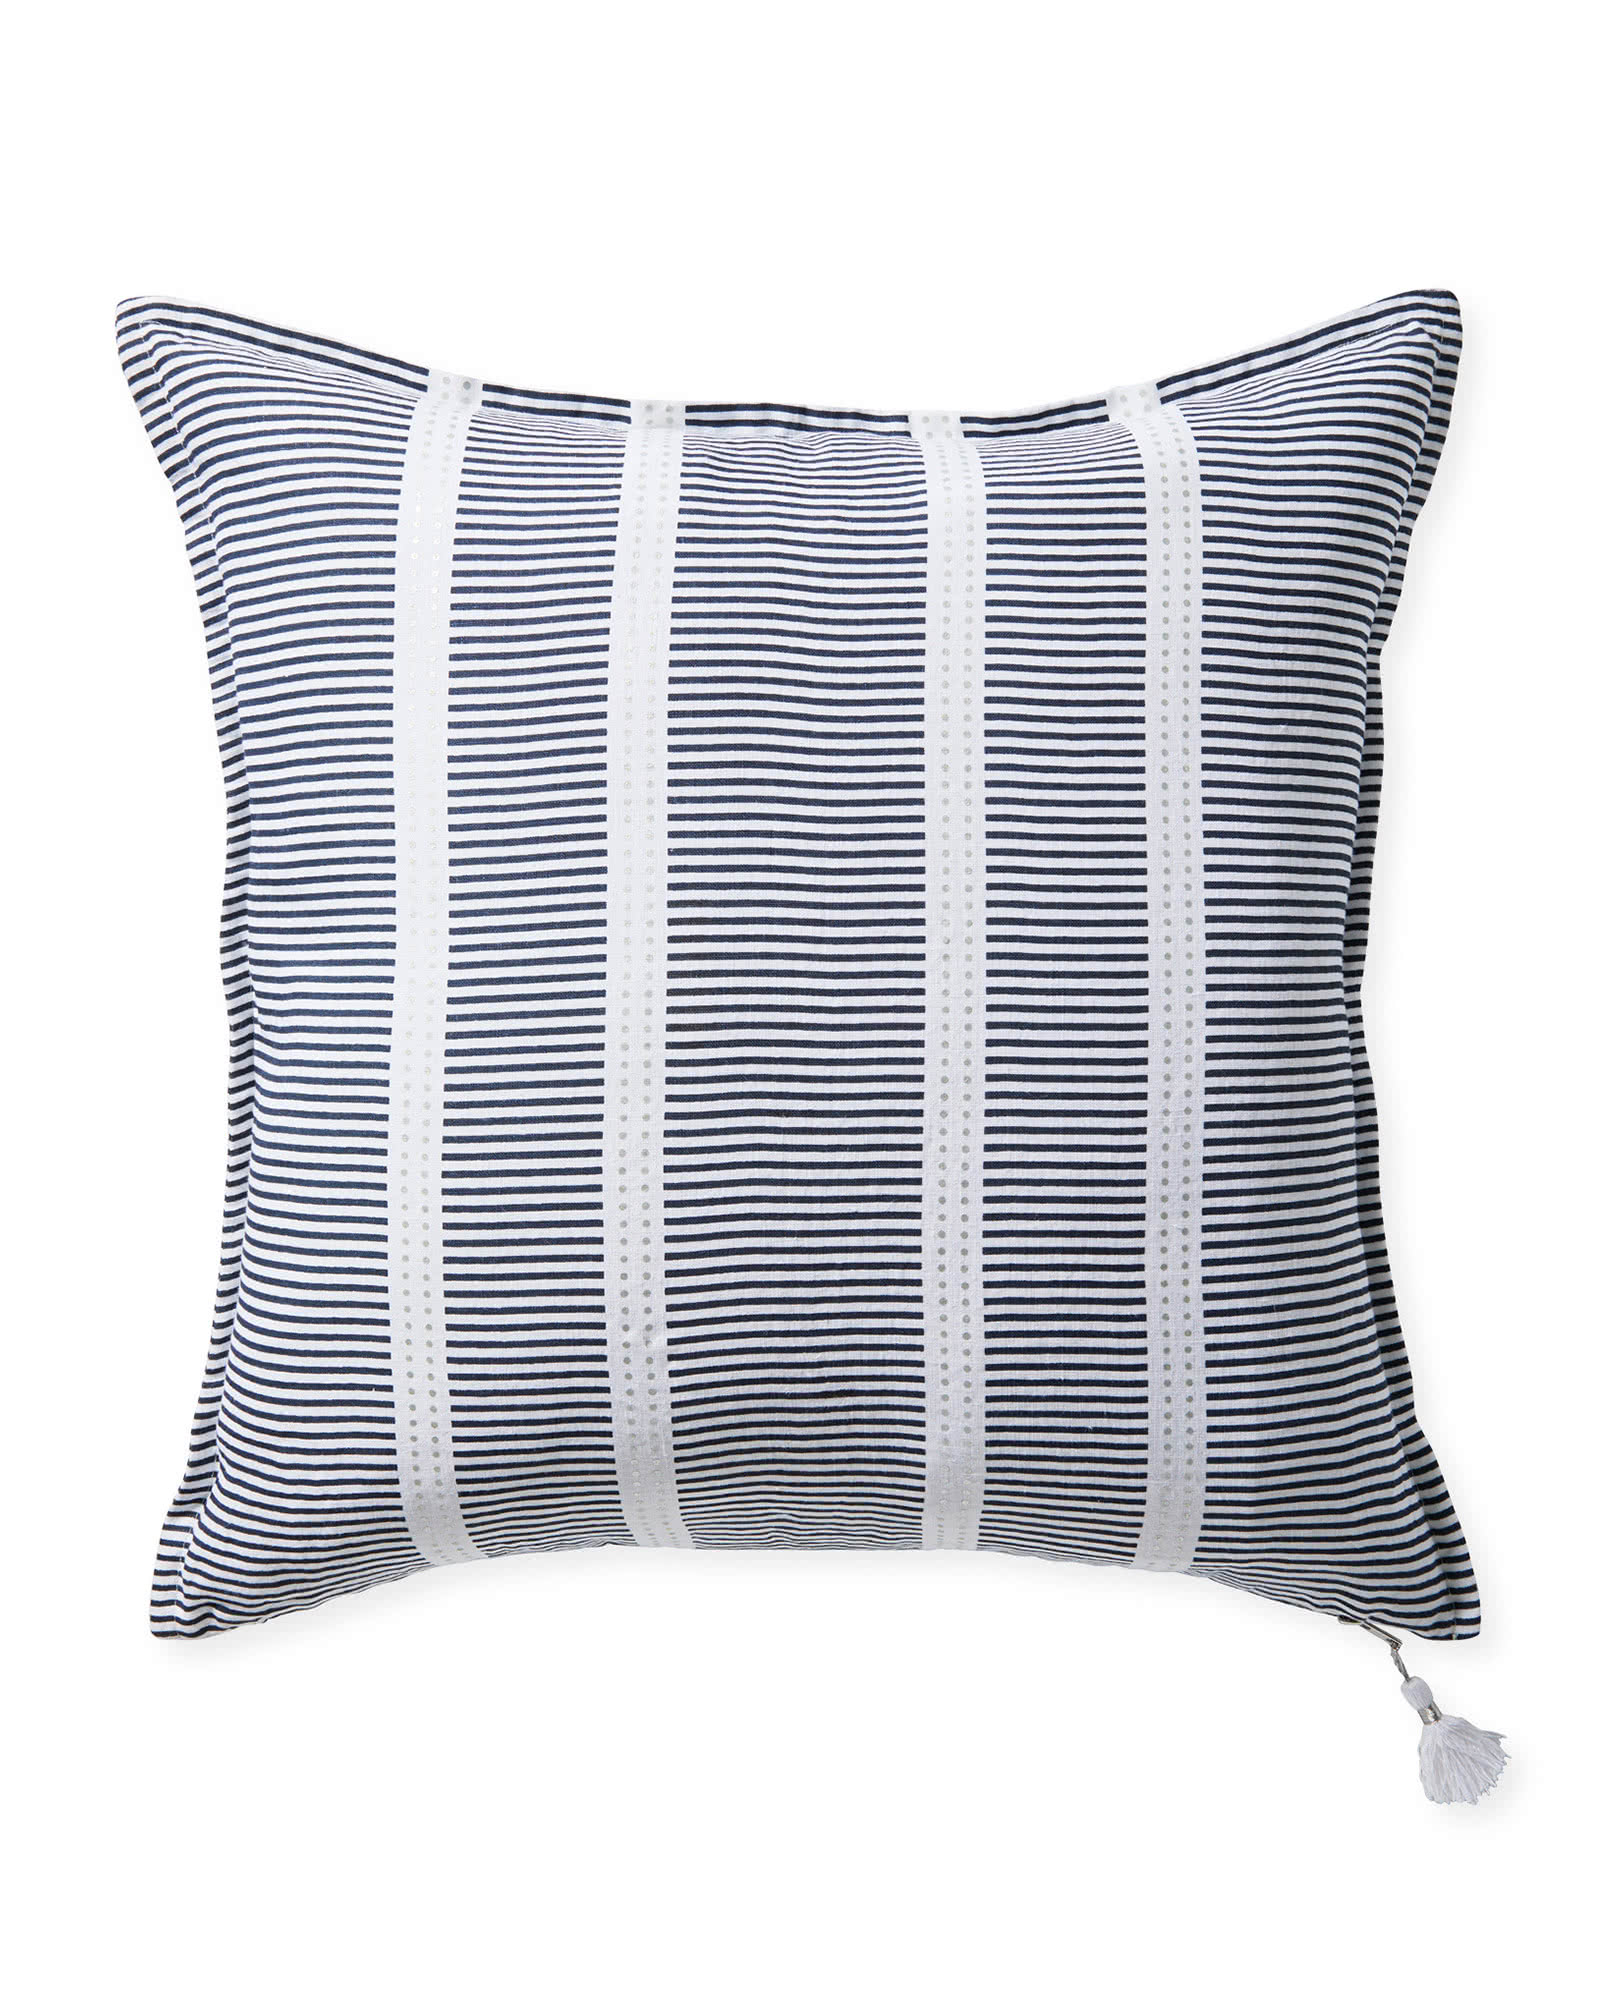 Piedmont Pillow Cover, Navy